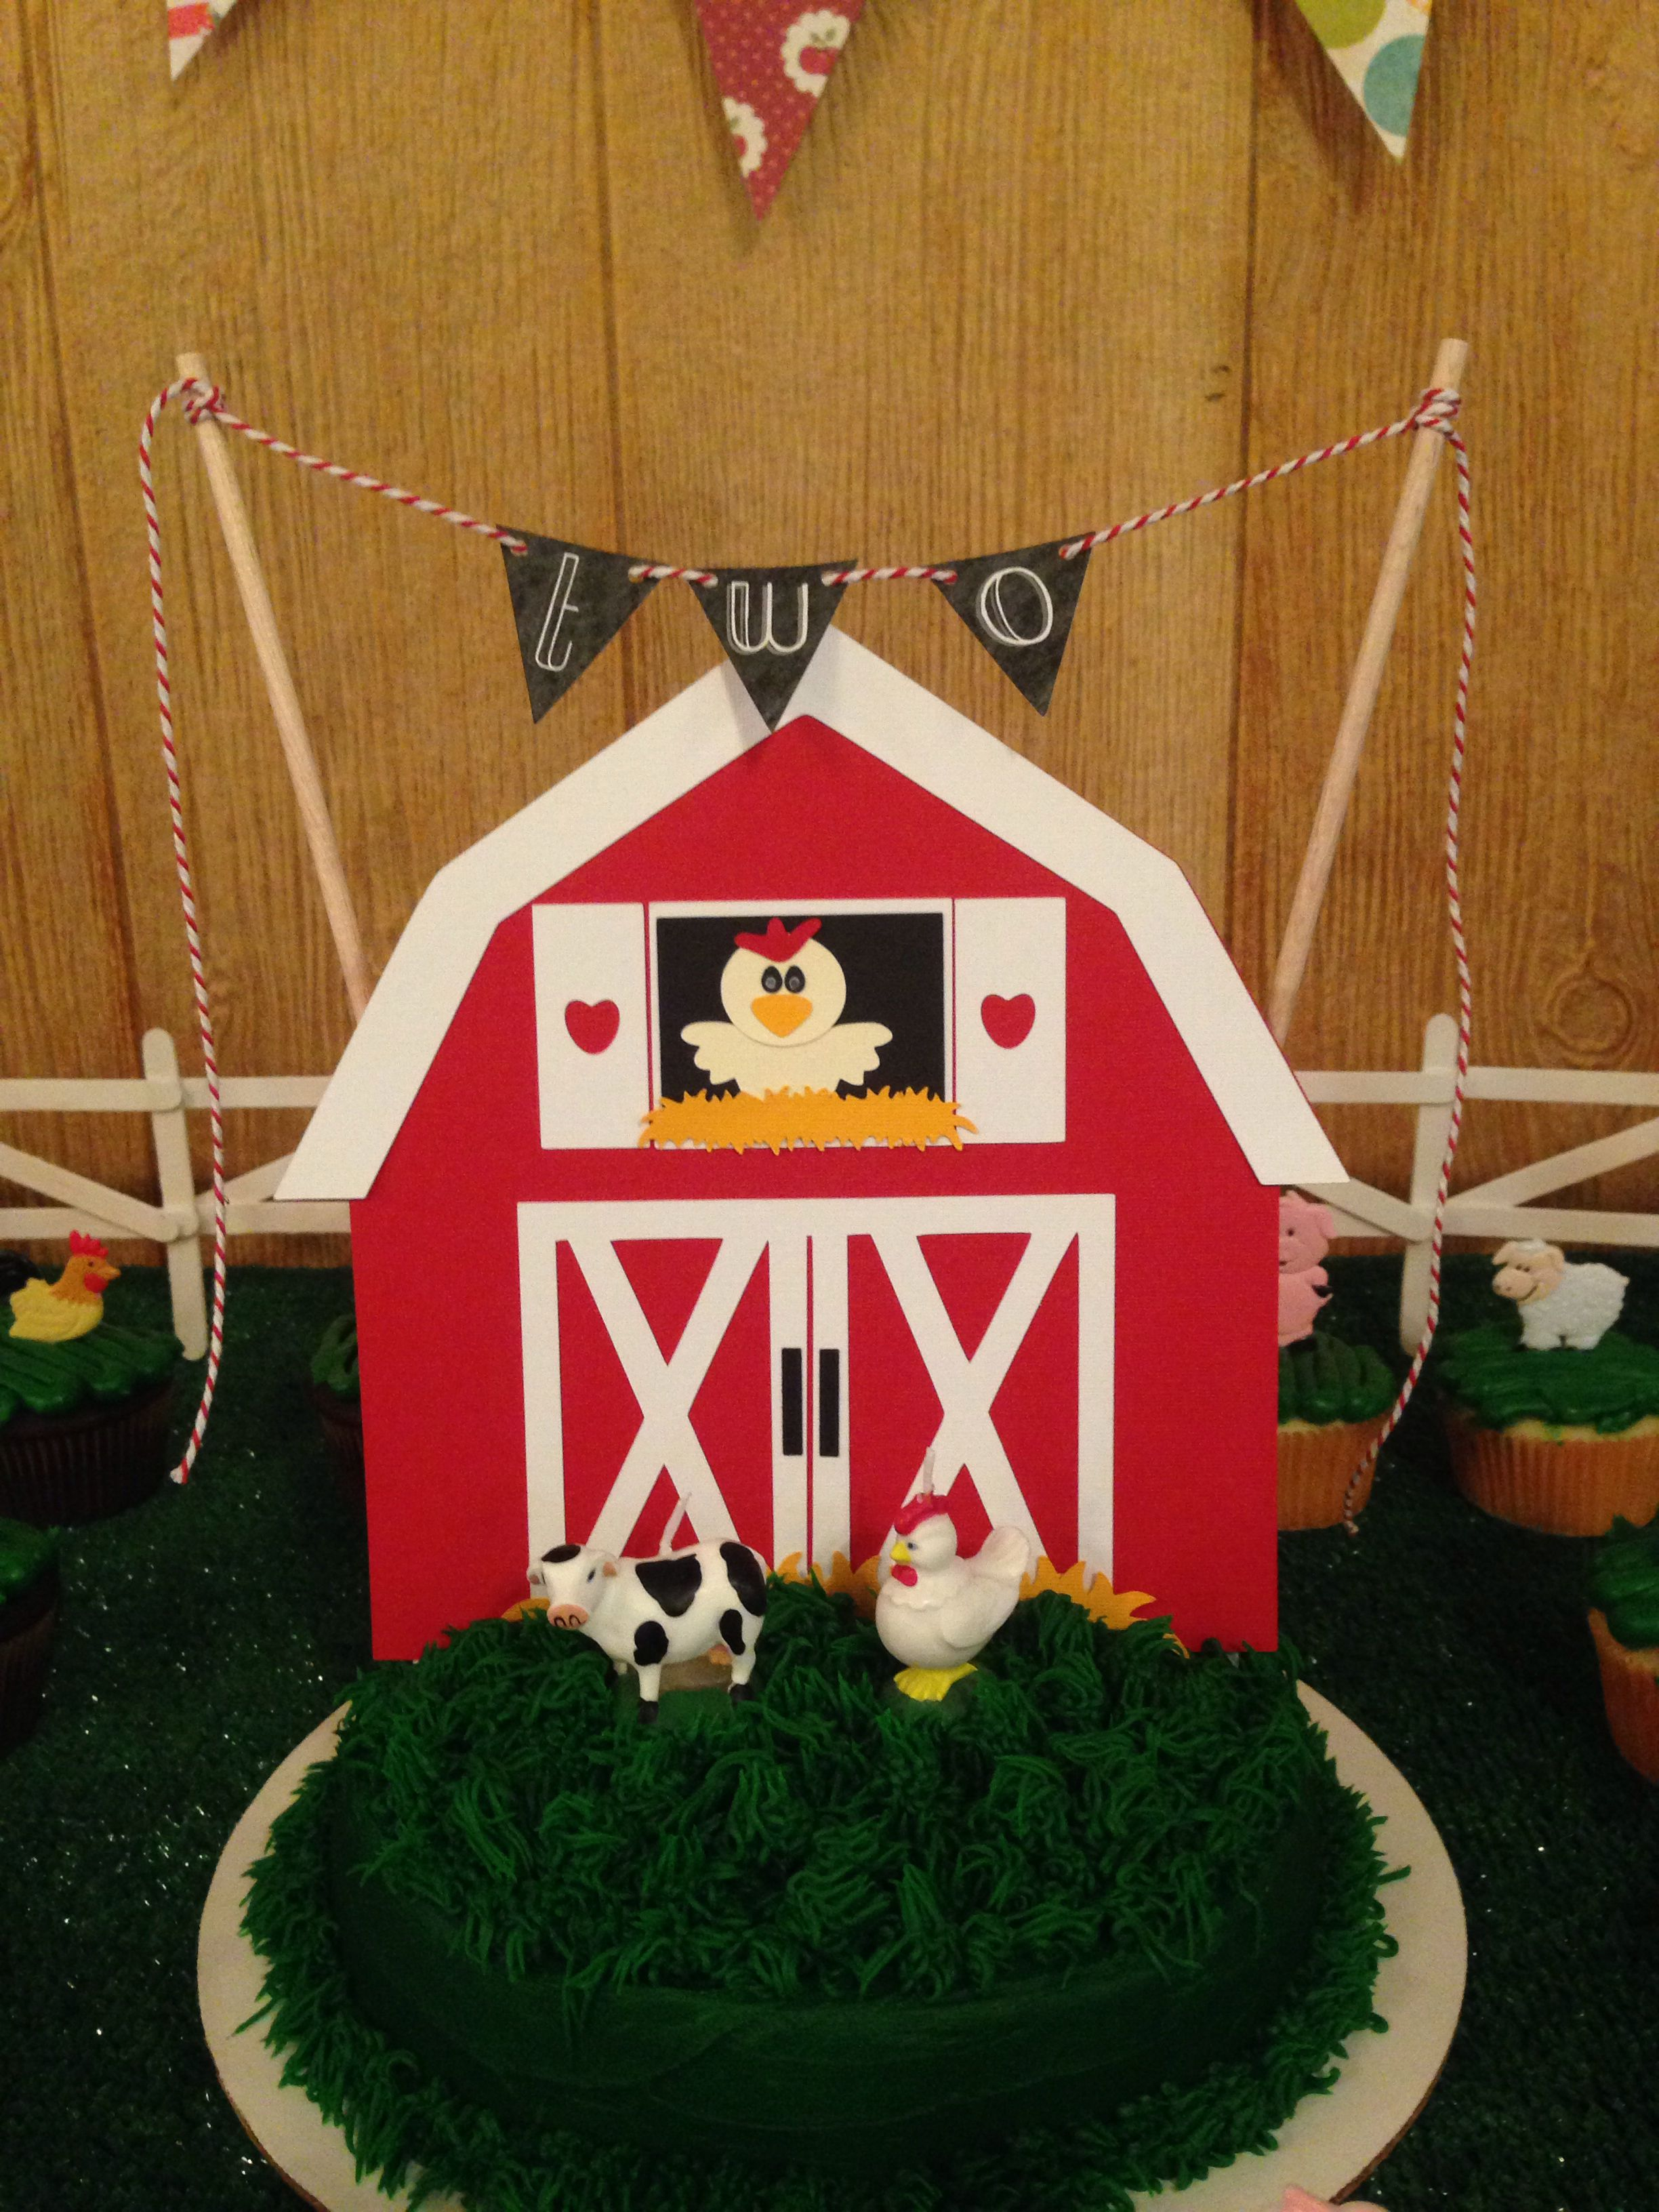 Barn cake topper for birthday cake